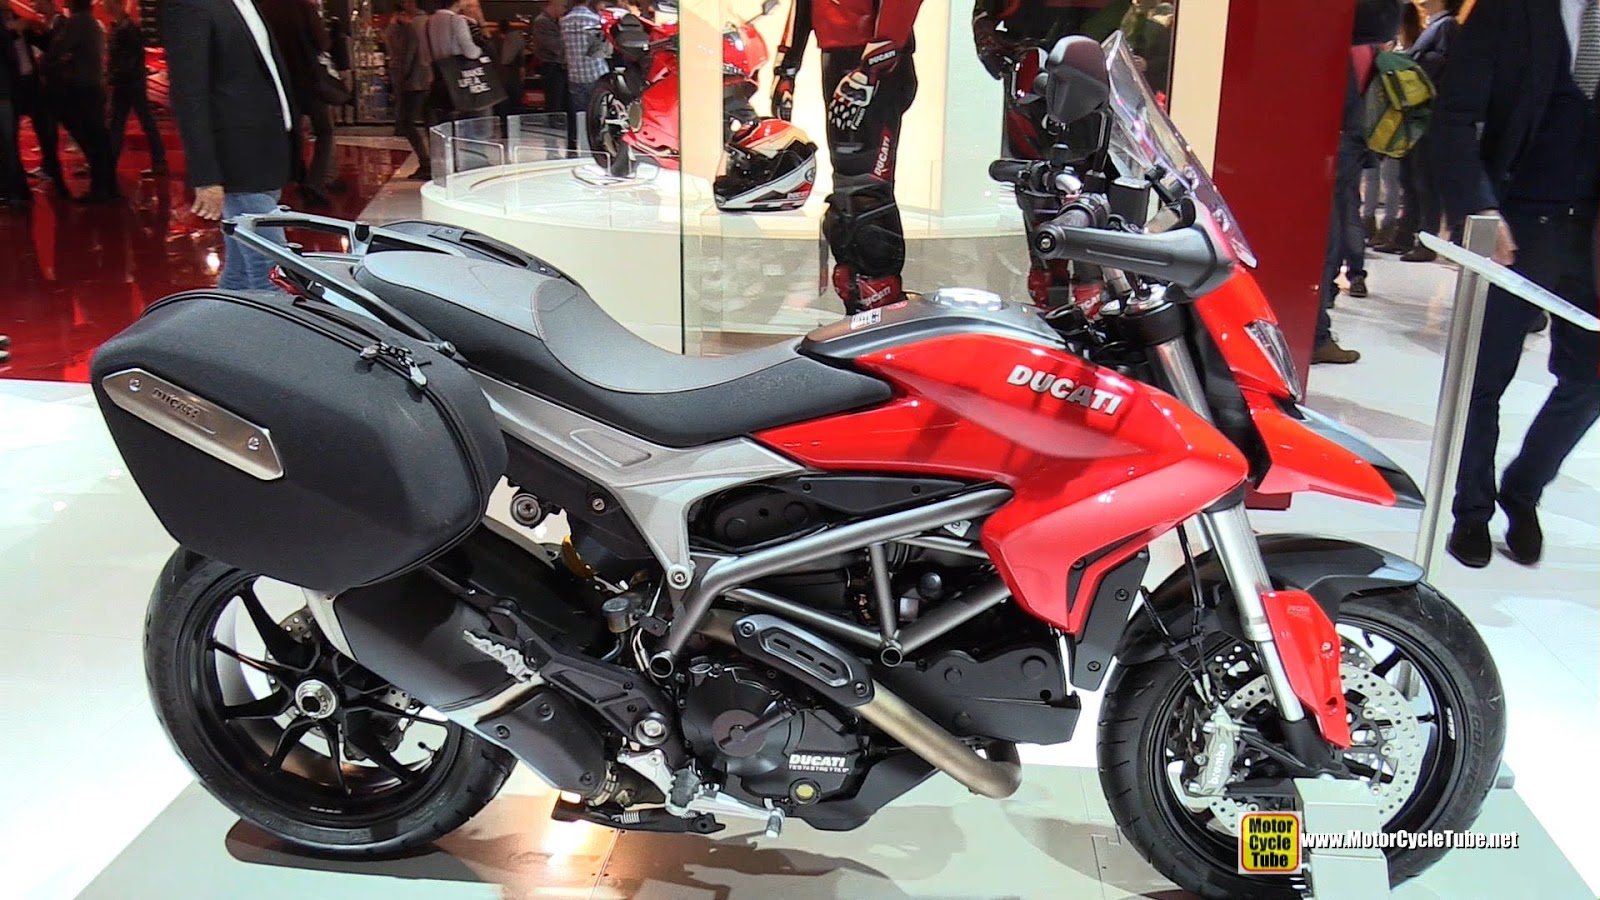 Ducati Workshop Manuals Resource  Ducati Hyperstrada 2015 Repair Workshop Manual